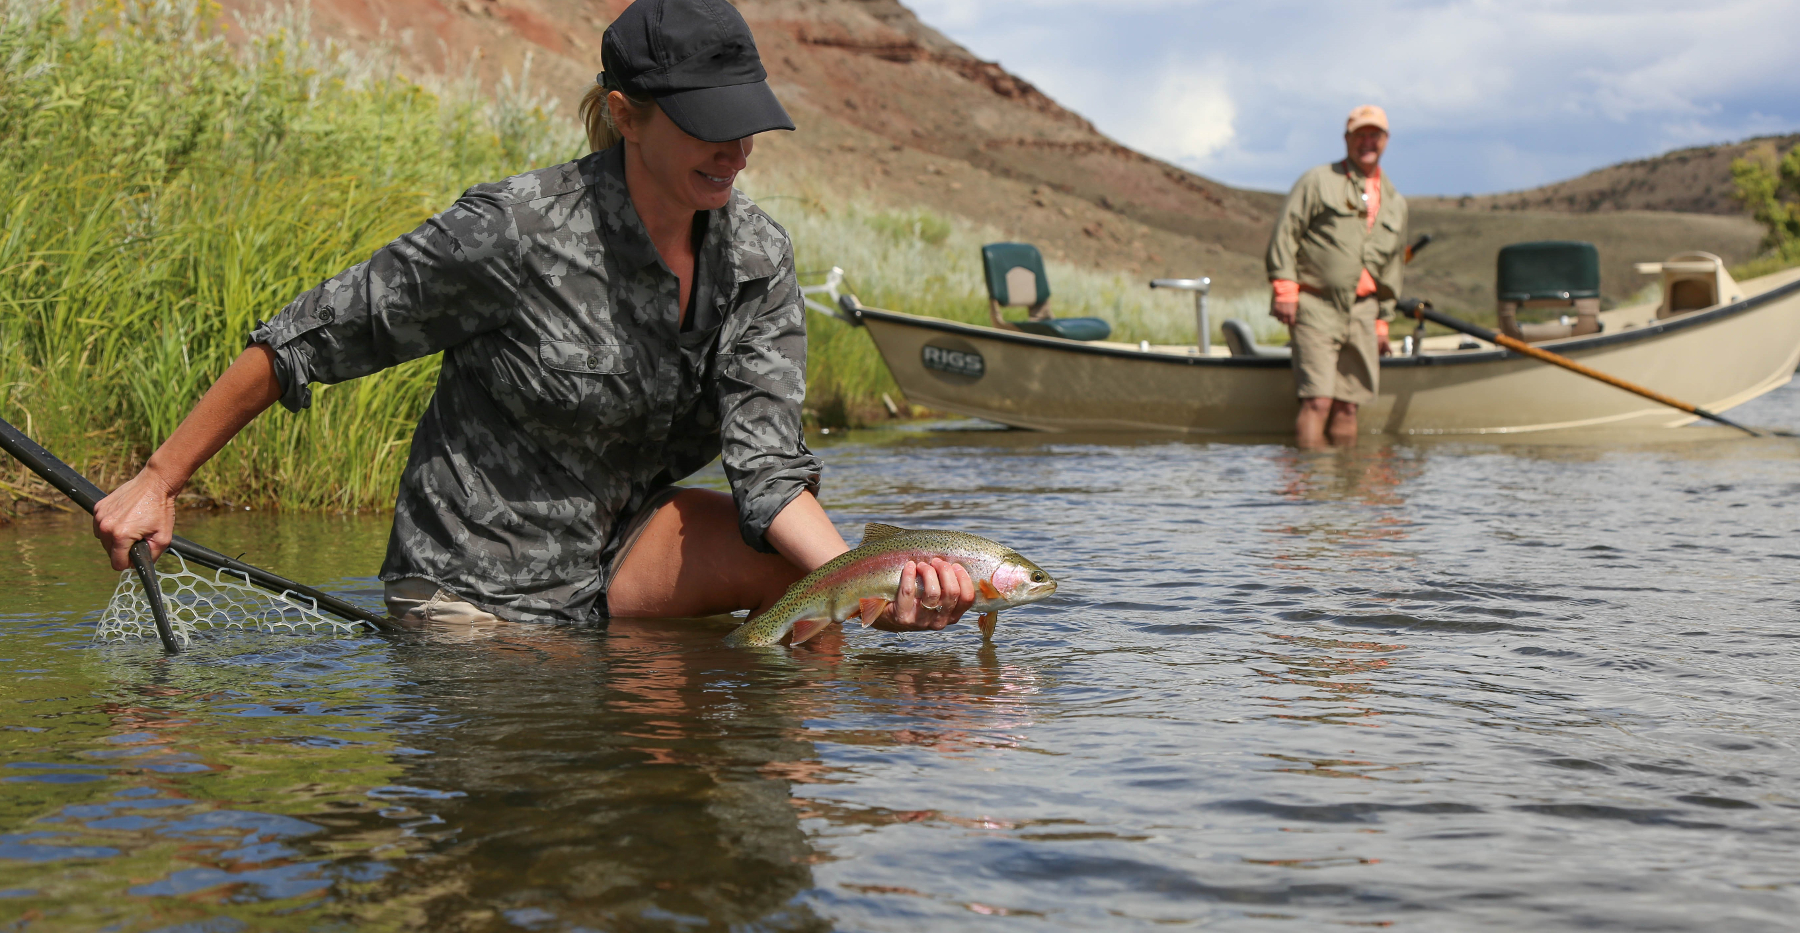 Rigs adventure co fly shop fly fishing guide service and for Drift boat fishing